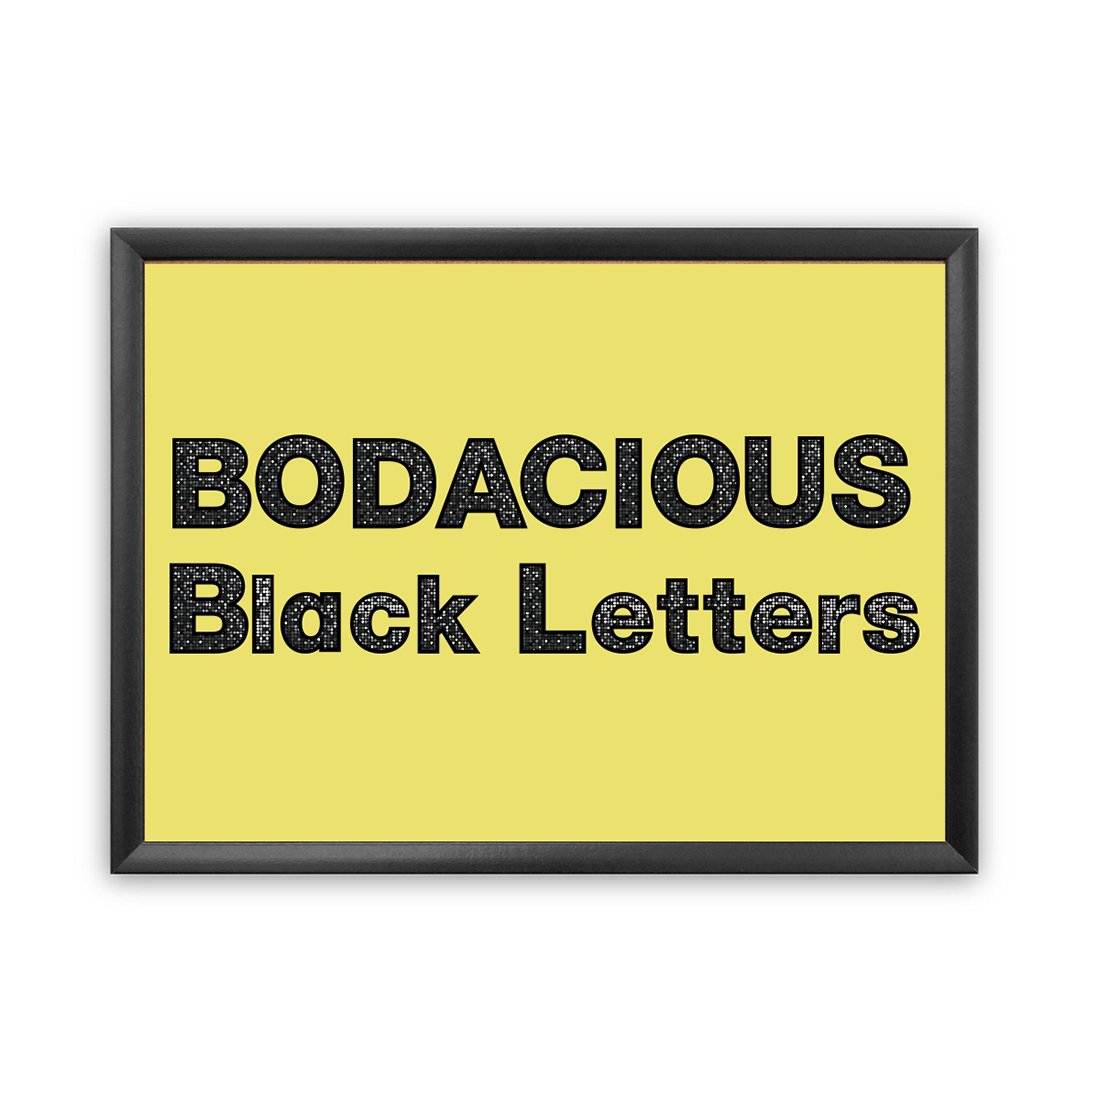 Hygloss Products Bulletin Board Letters and Numbers – Punch Out Bodacious Black Design Combo – 3 Inch, 350 Pieces